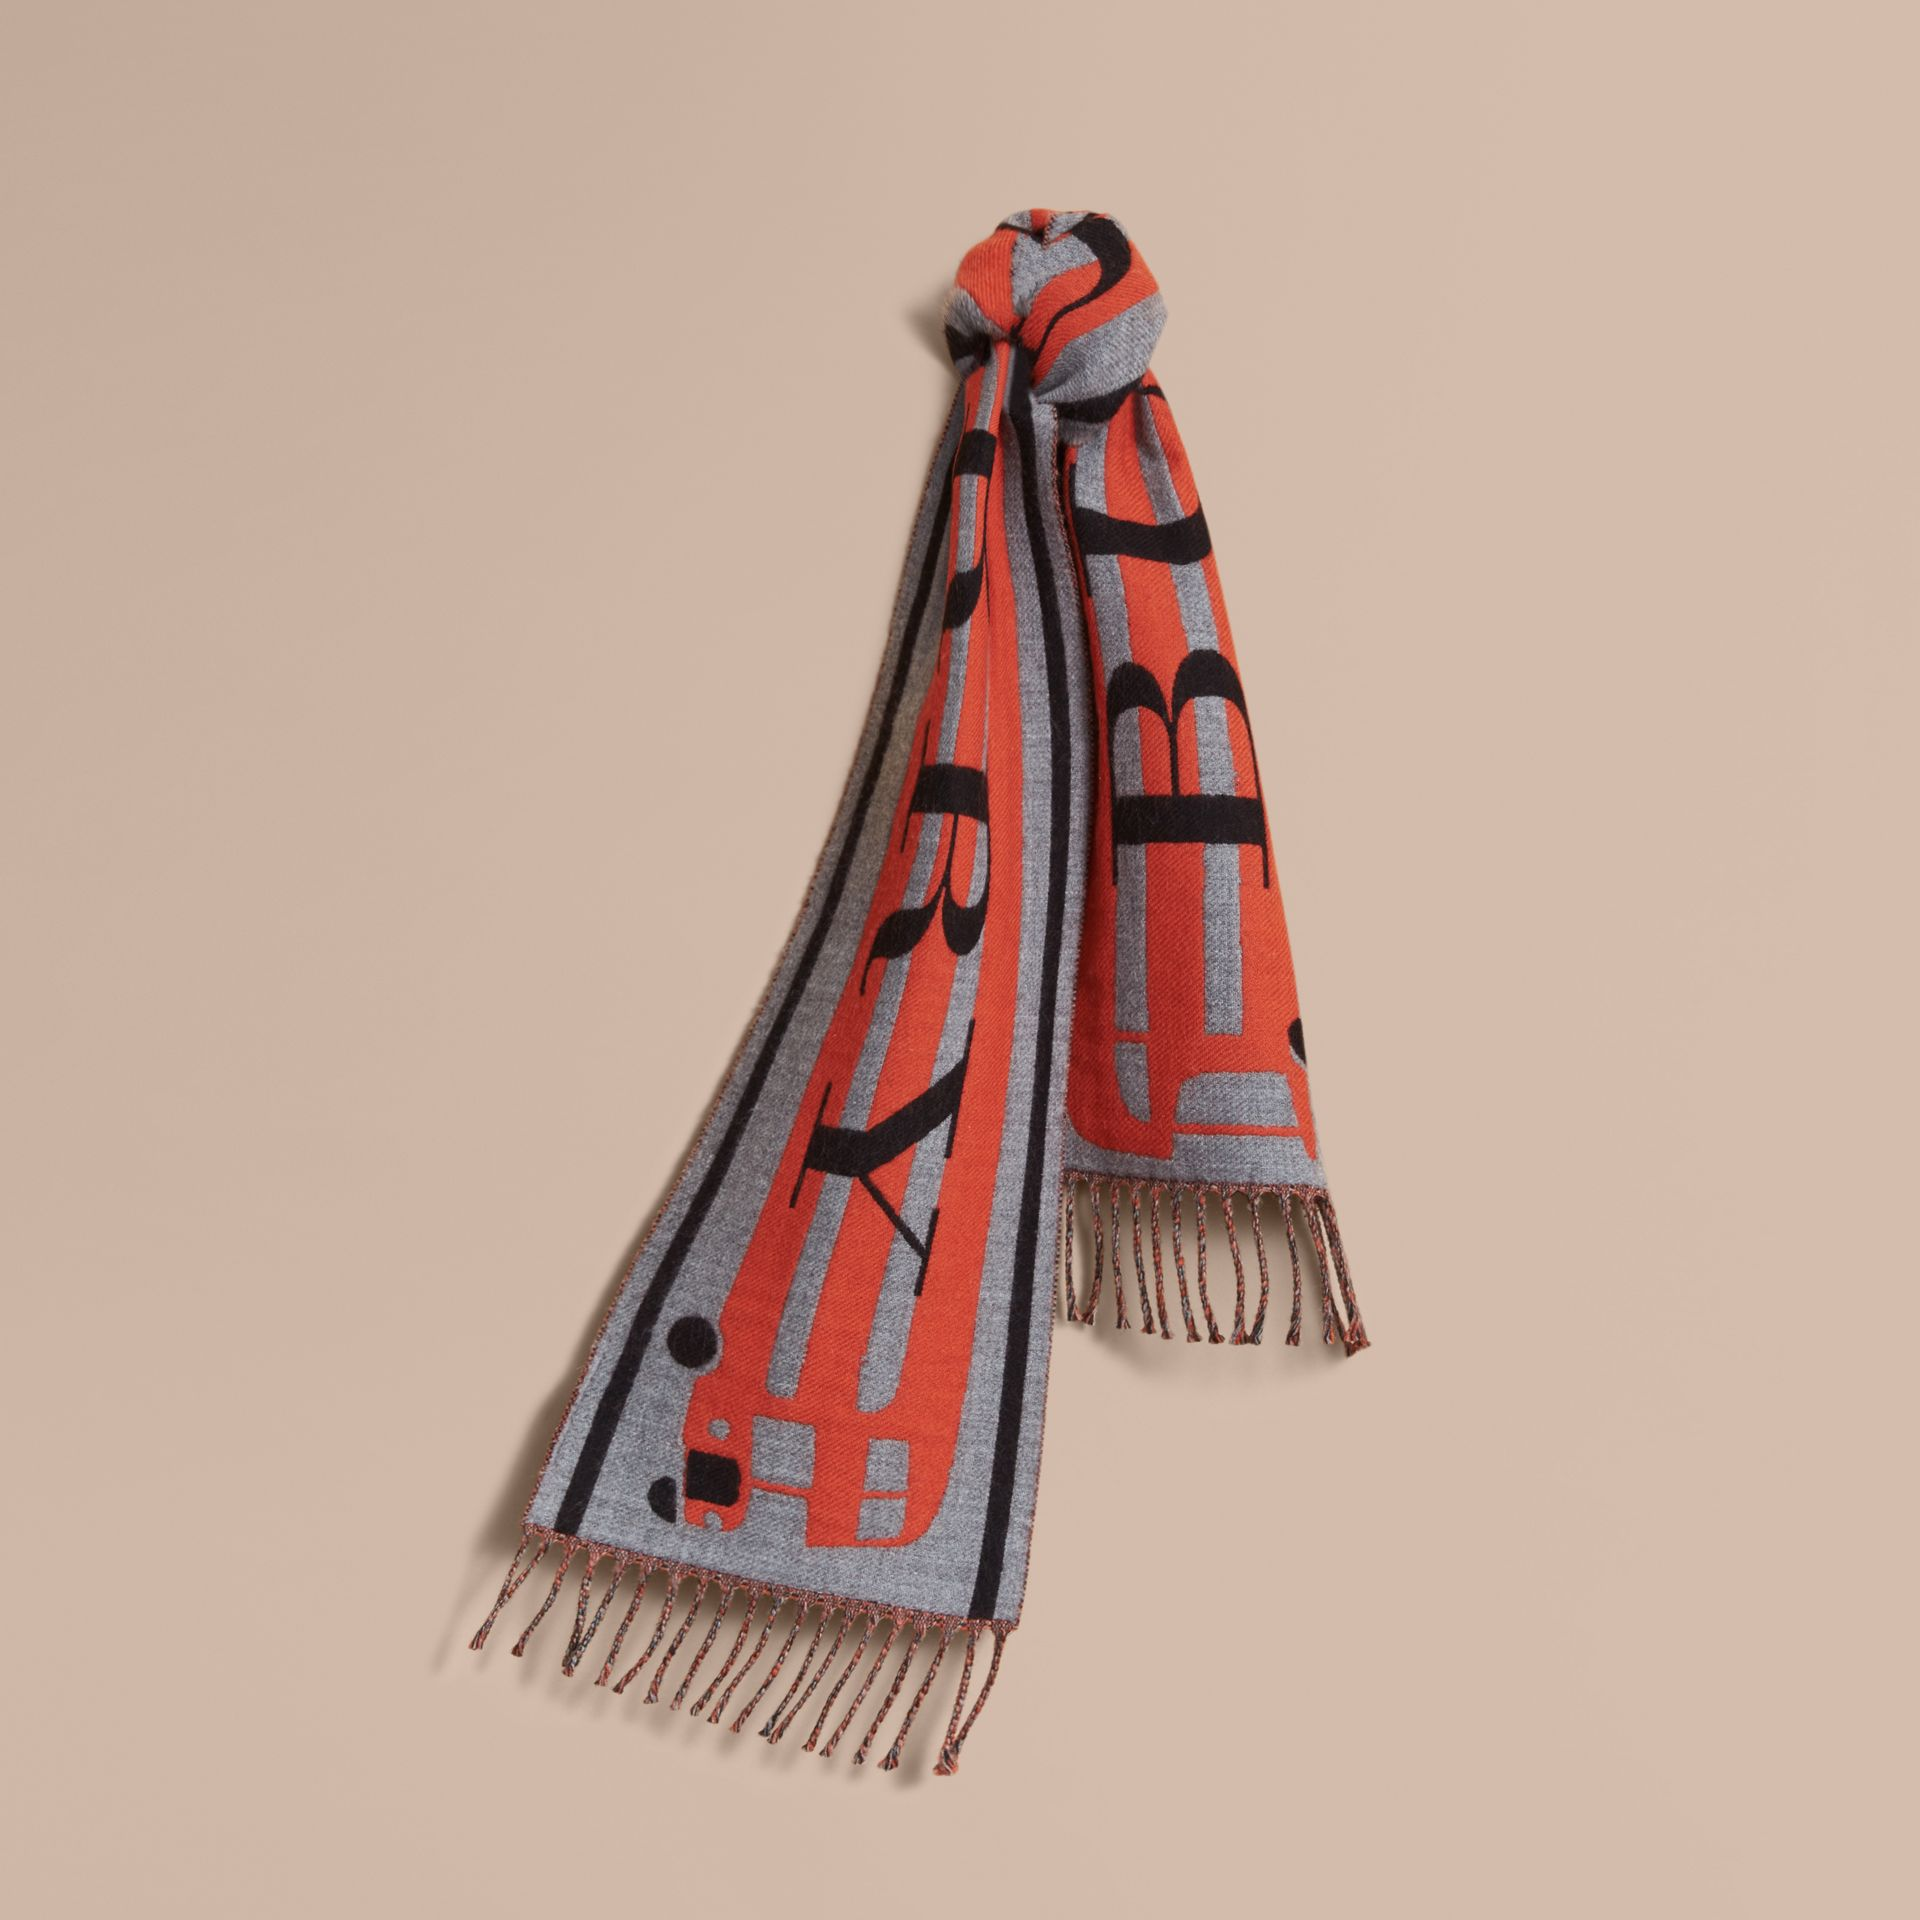 Burberry Lettering Bus Motif Wool Mini Scarf in Mid Grey Melange | Burberry - gallery image 1